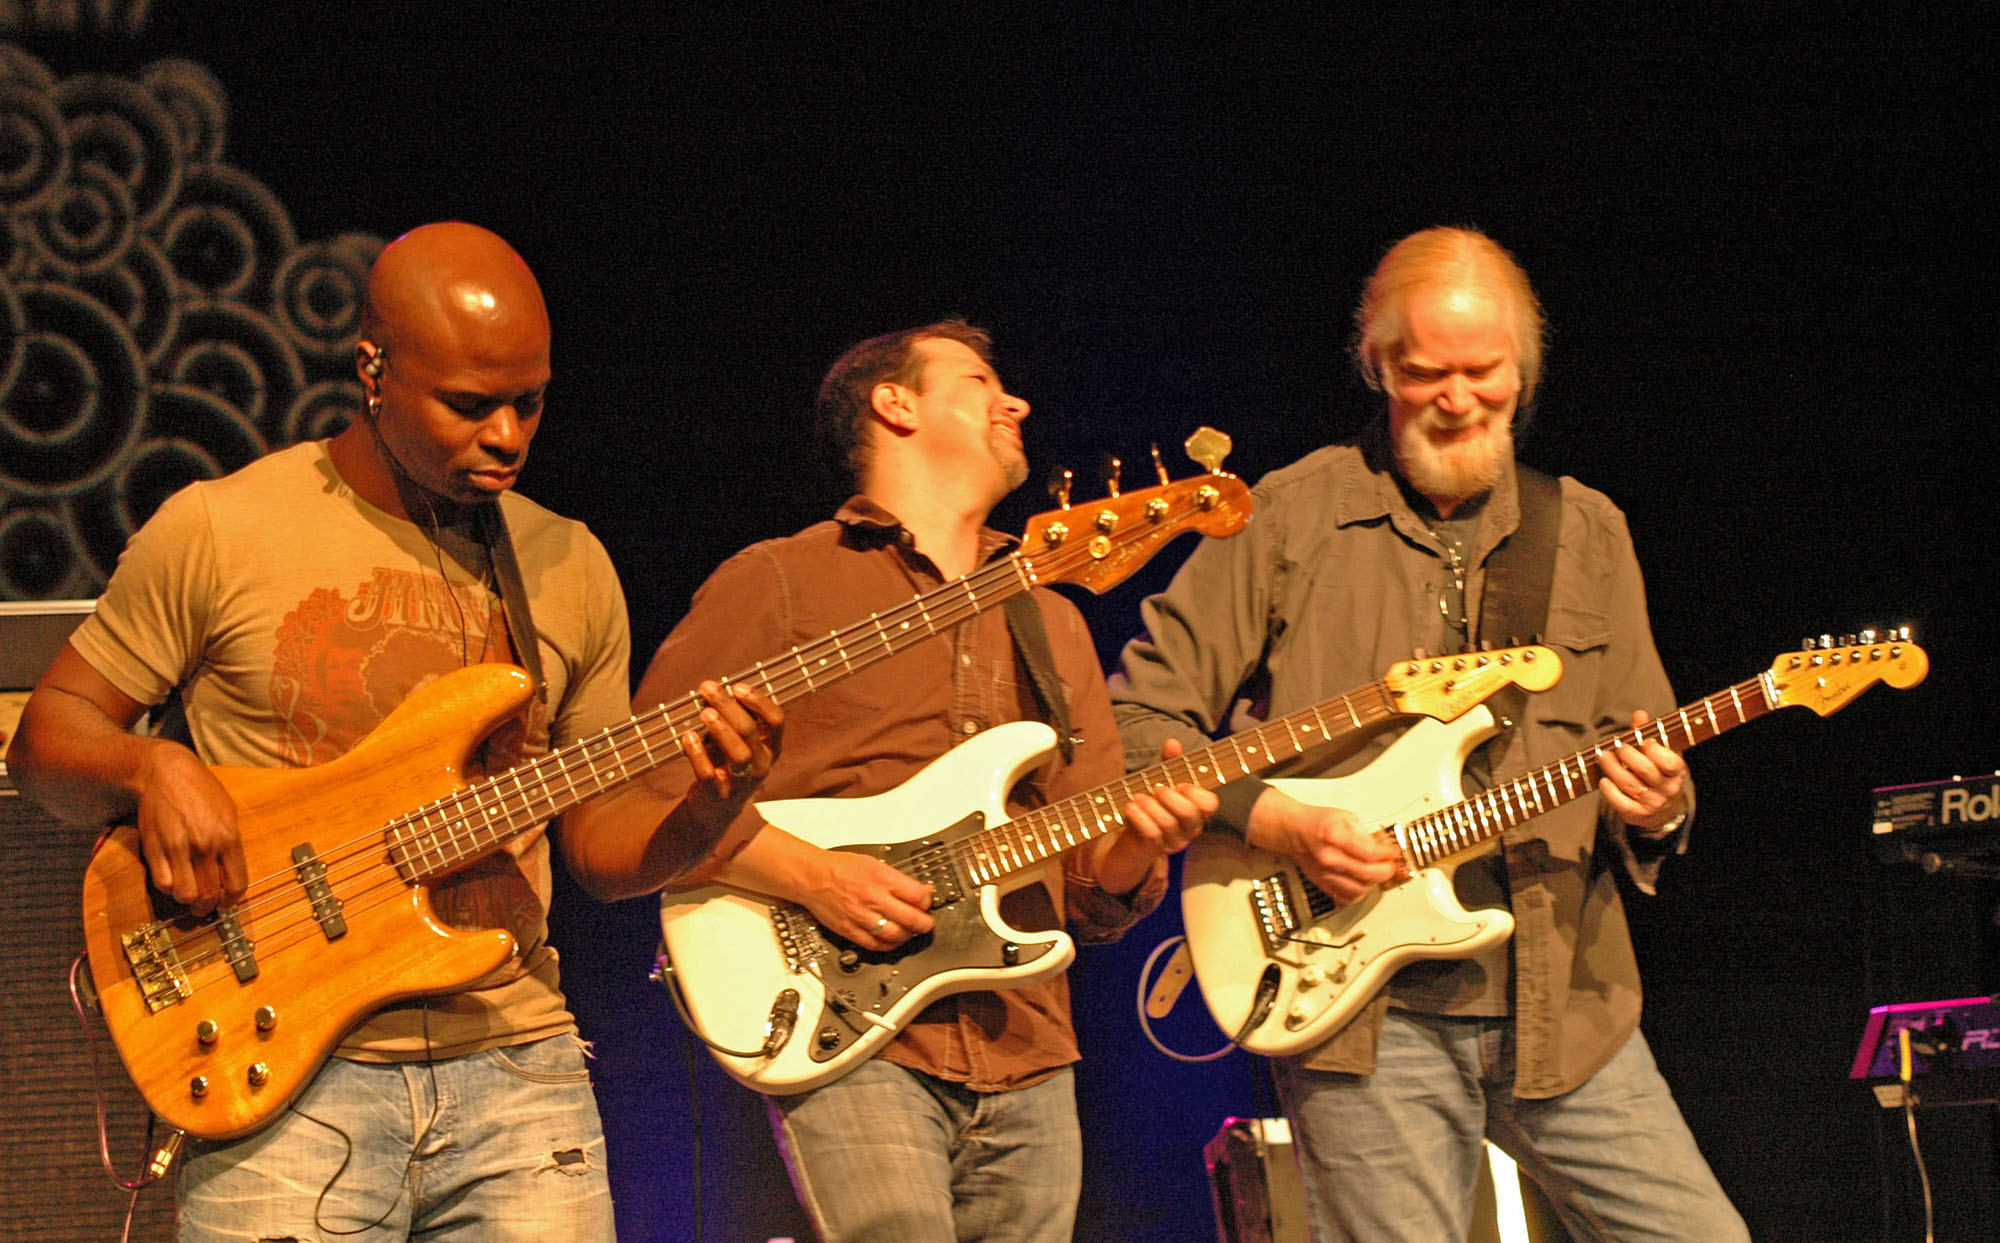 Richie Goods, Tom Guarna and Jimmy Herring, Performing with Lenny White's Anomaly at the 2010 New Universe Music Festival